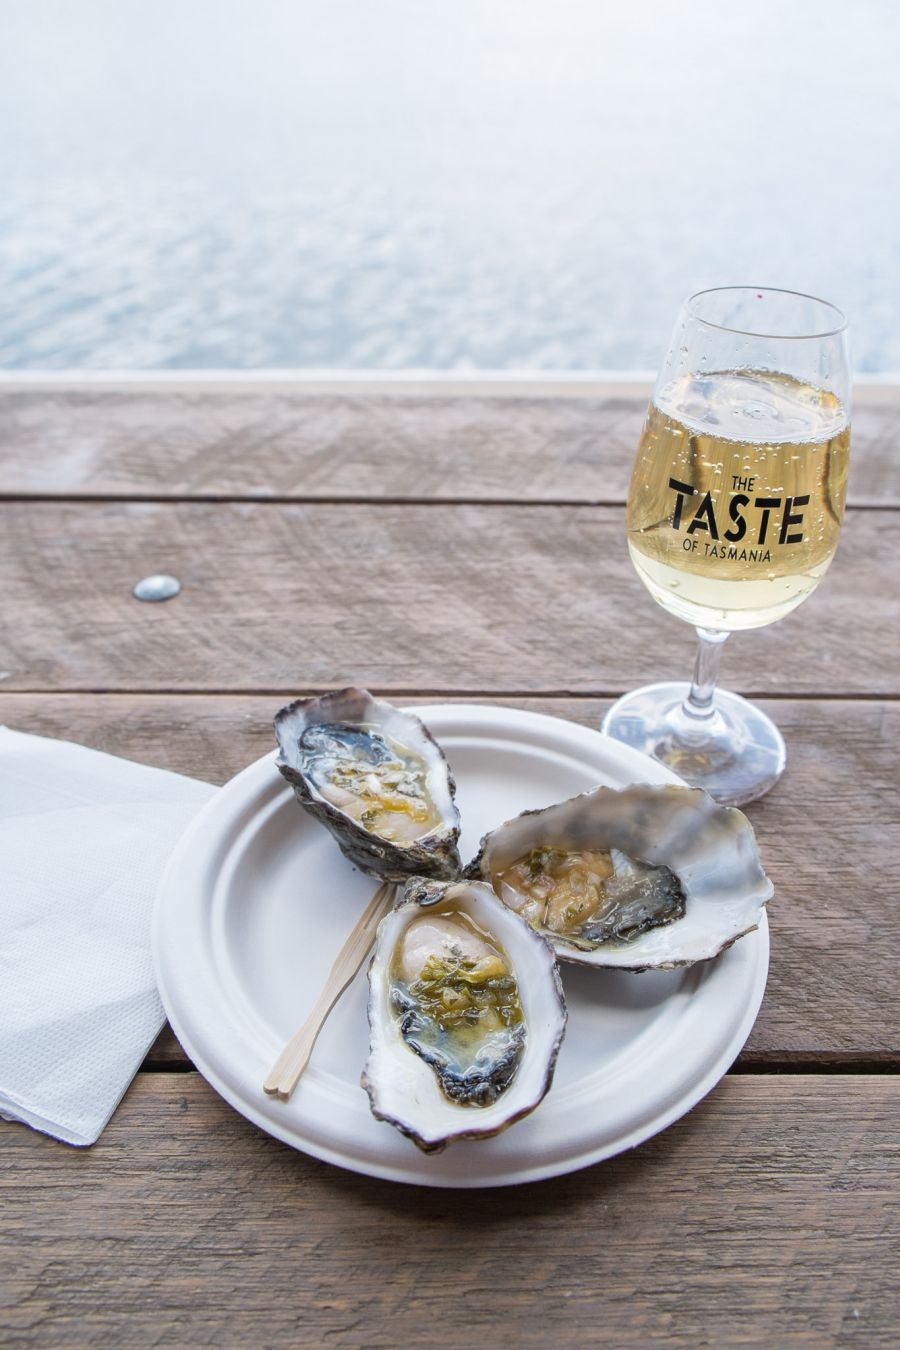 From the Clover Hill Oyster Bar - oysters dressed with Pernod, tarragon and olive oil, with a glass of champagne